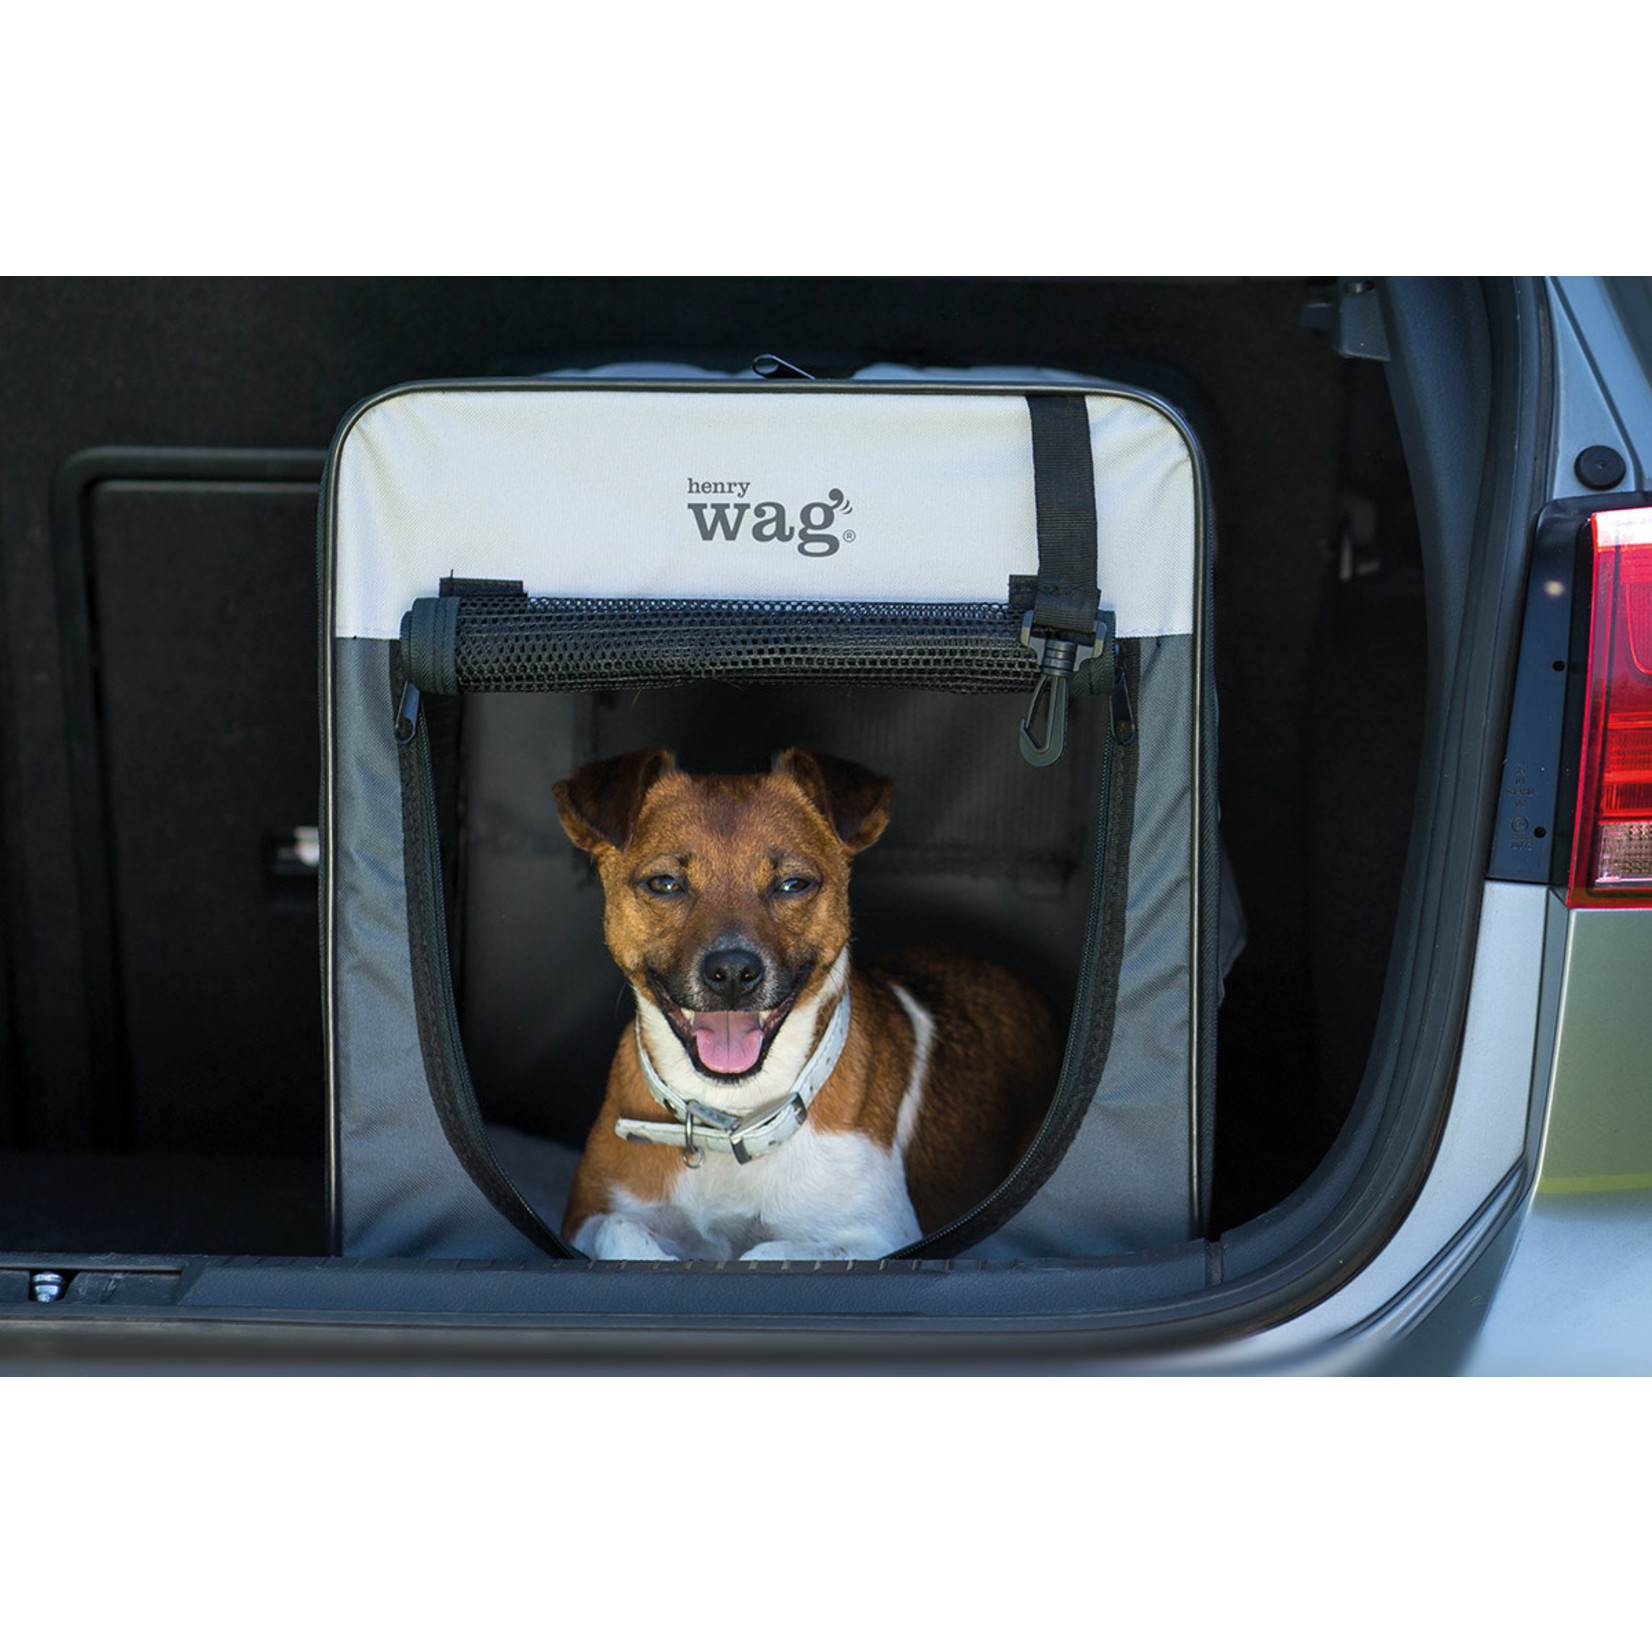 Henry Wag Folding Fabric Pet Travel Crate, Medium 64x46x53cm